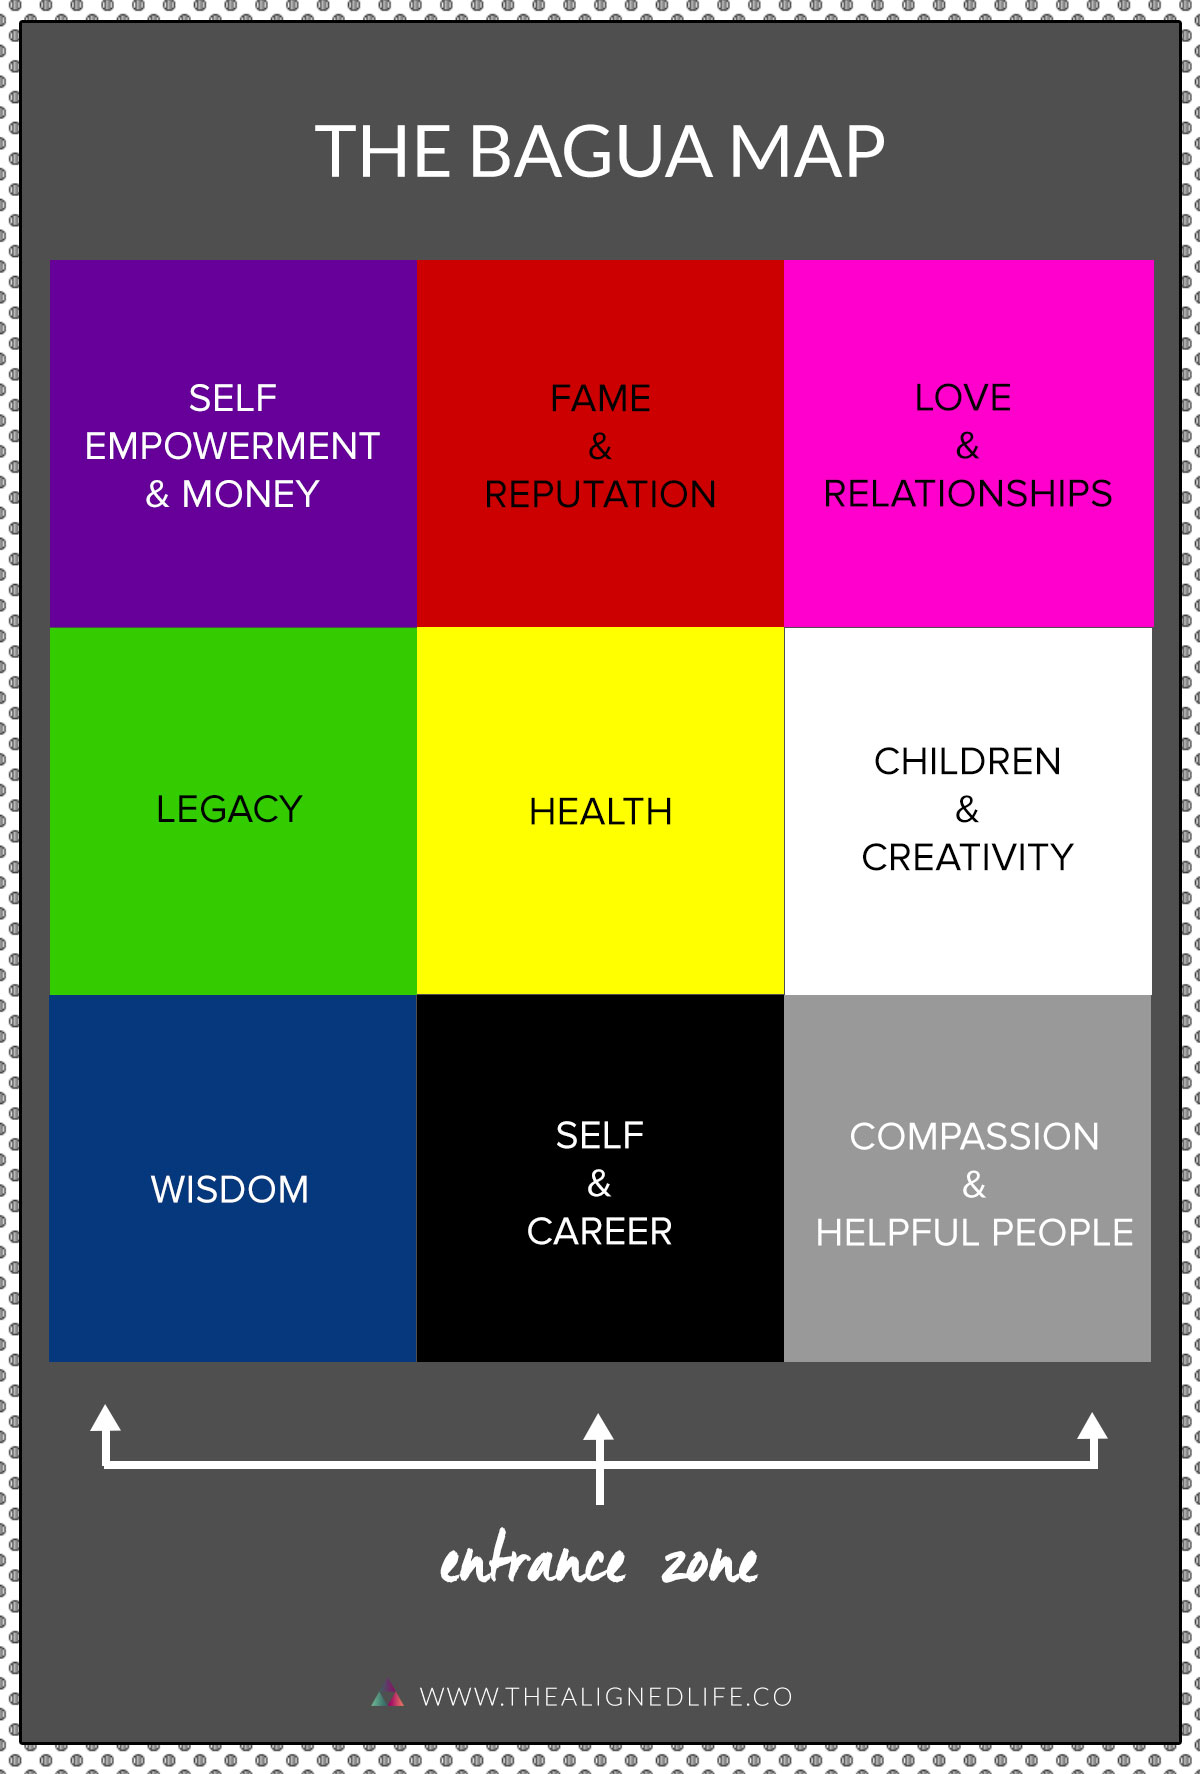 feng shui bagua map. feng shui  the bagua map  the aligned life